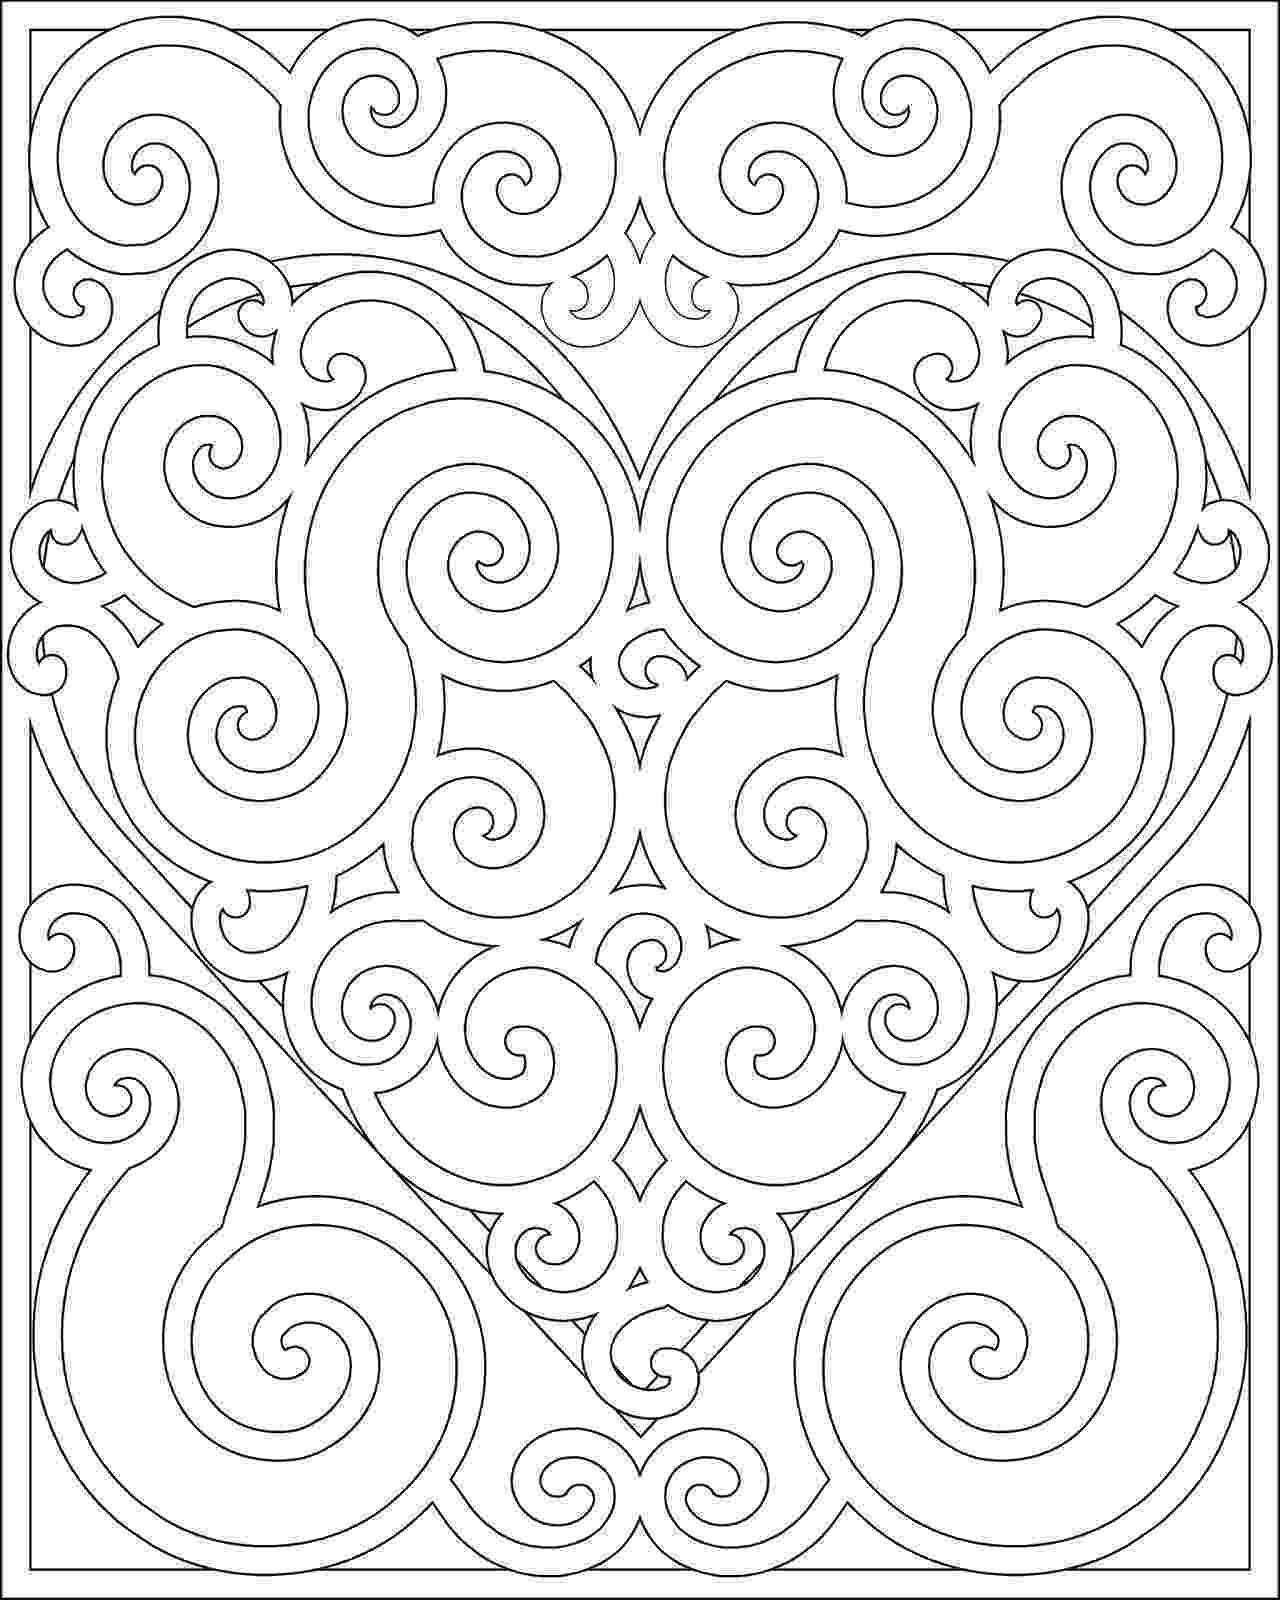 pattern colouring pages swirl pattern coloring page free printable coloring pages pages colouring pattern